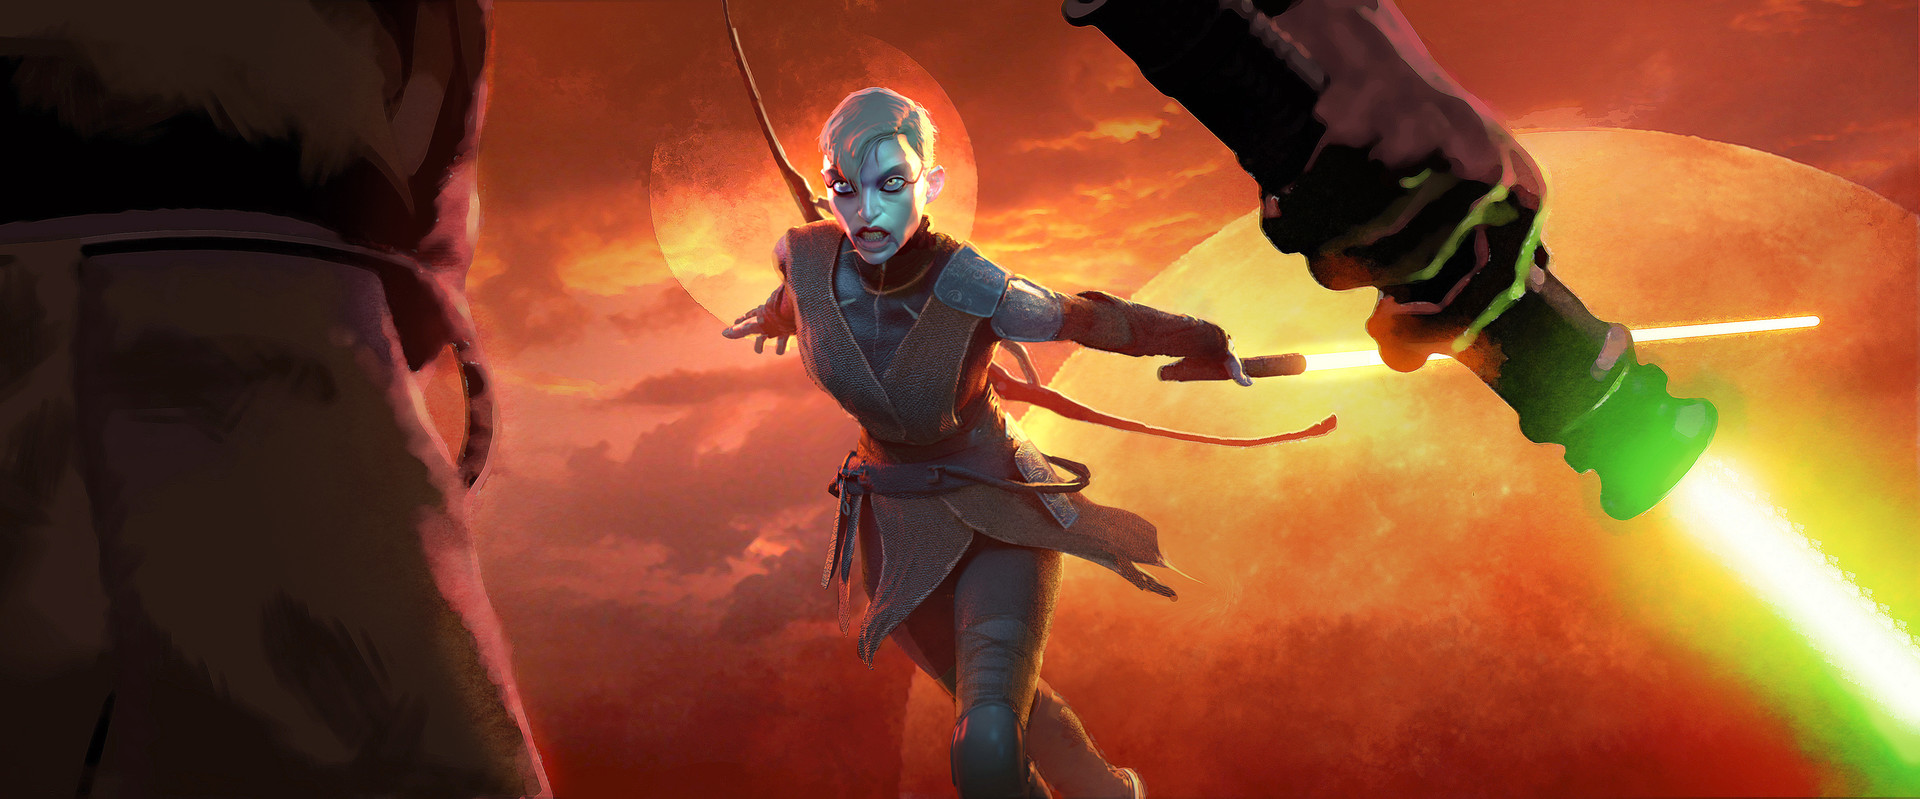 aaron-mcbride-ventress-w-bow-looking-up-